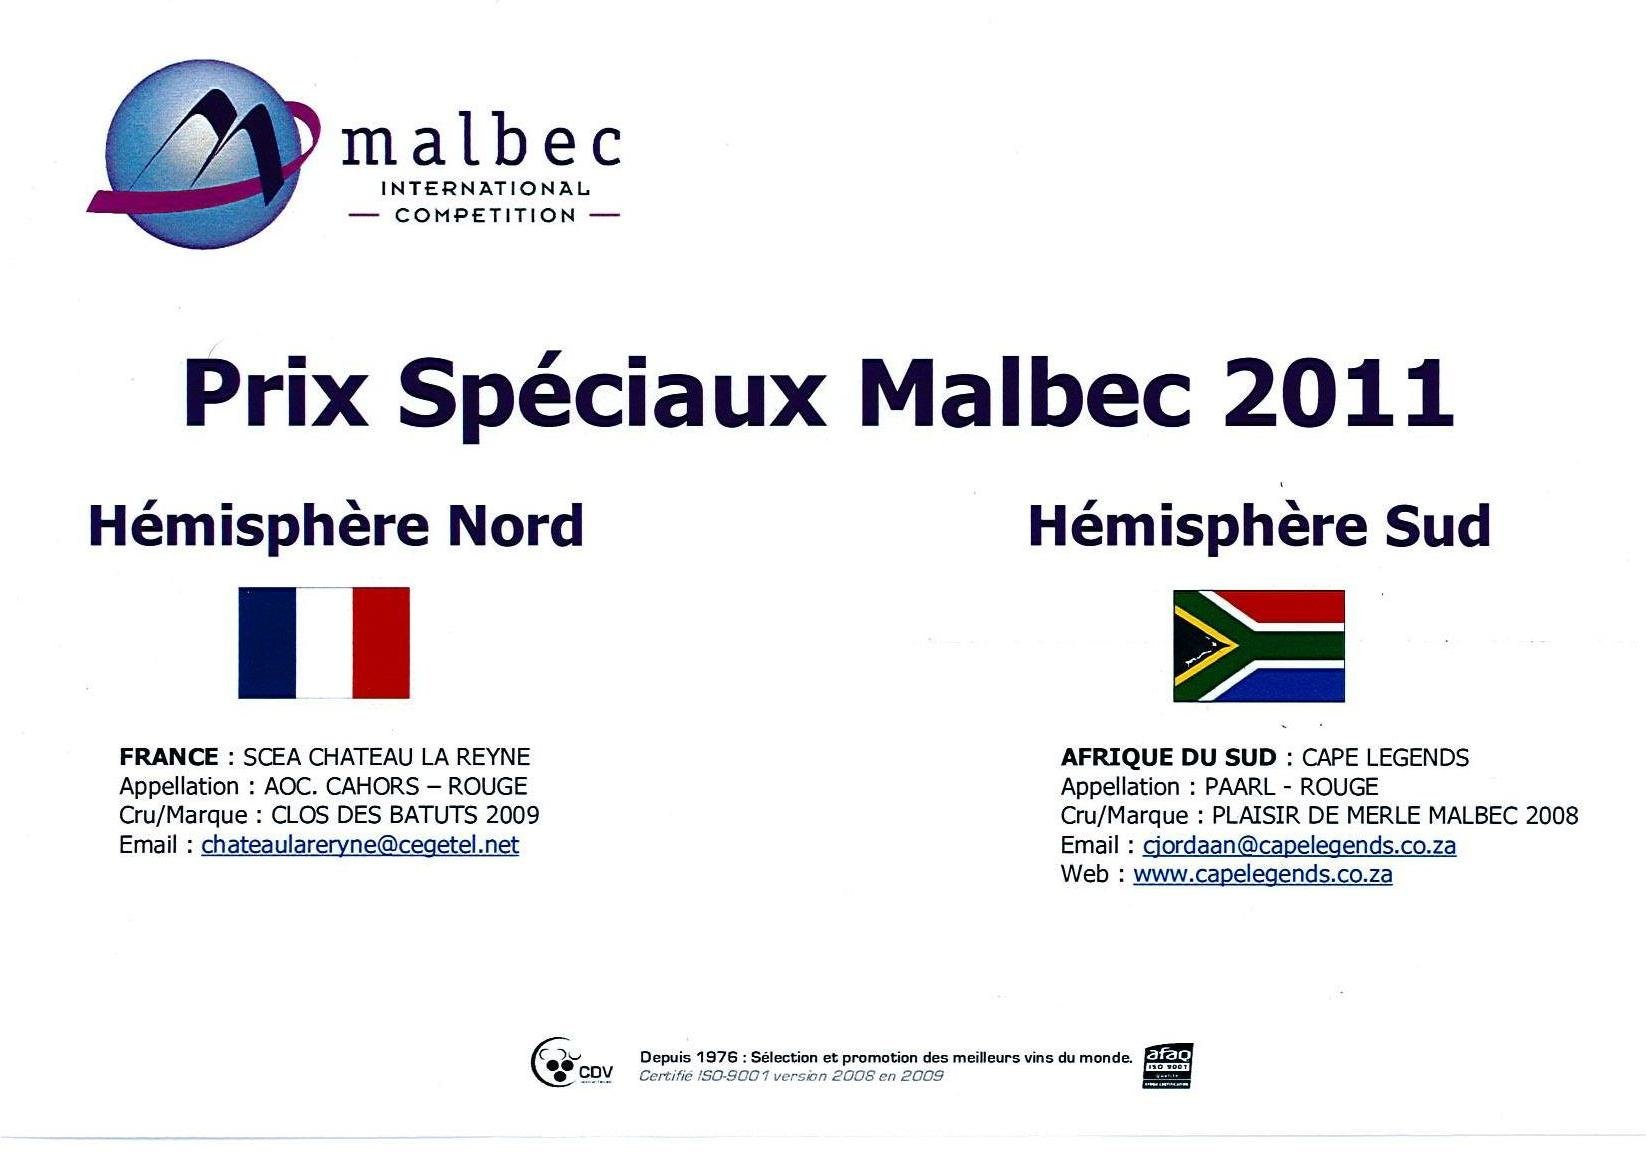 prixspciauxmabeccompetition2011.jpg